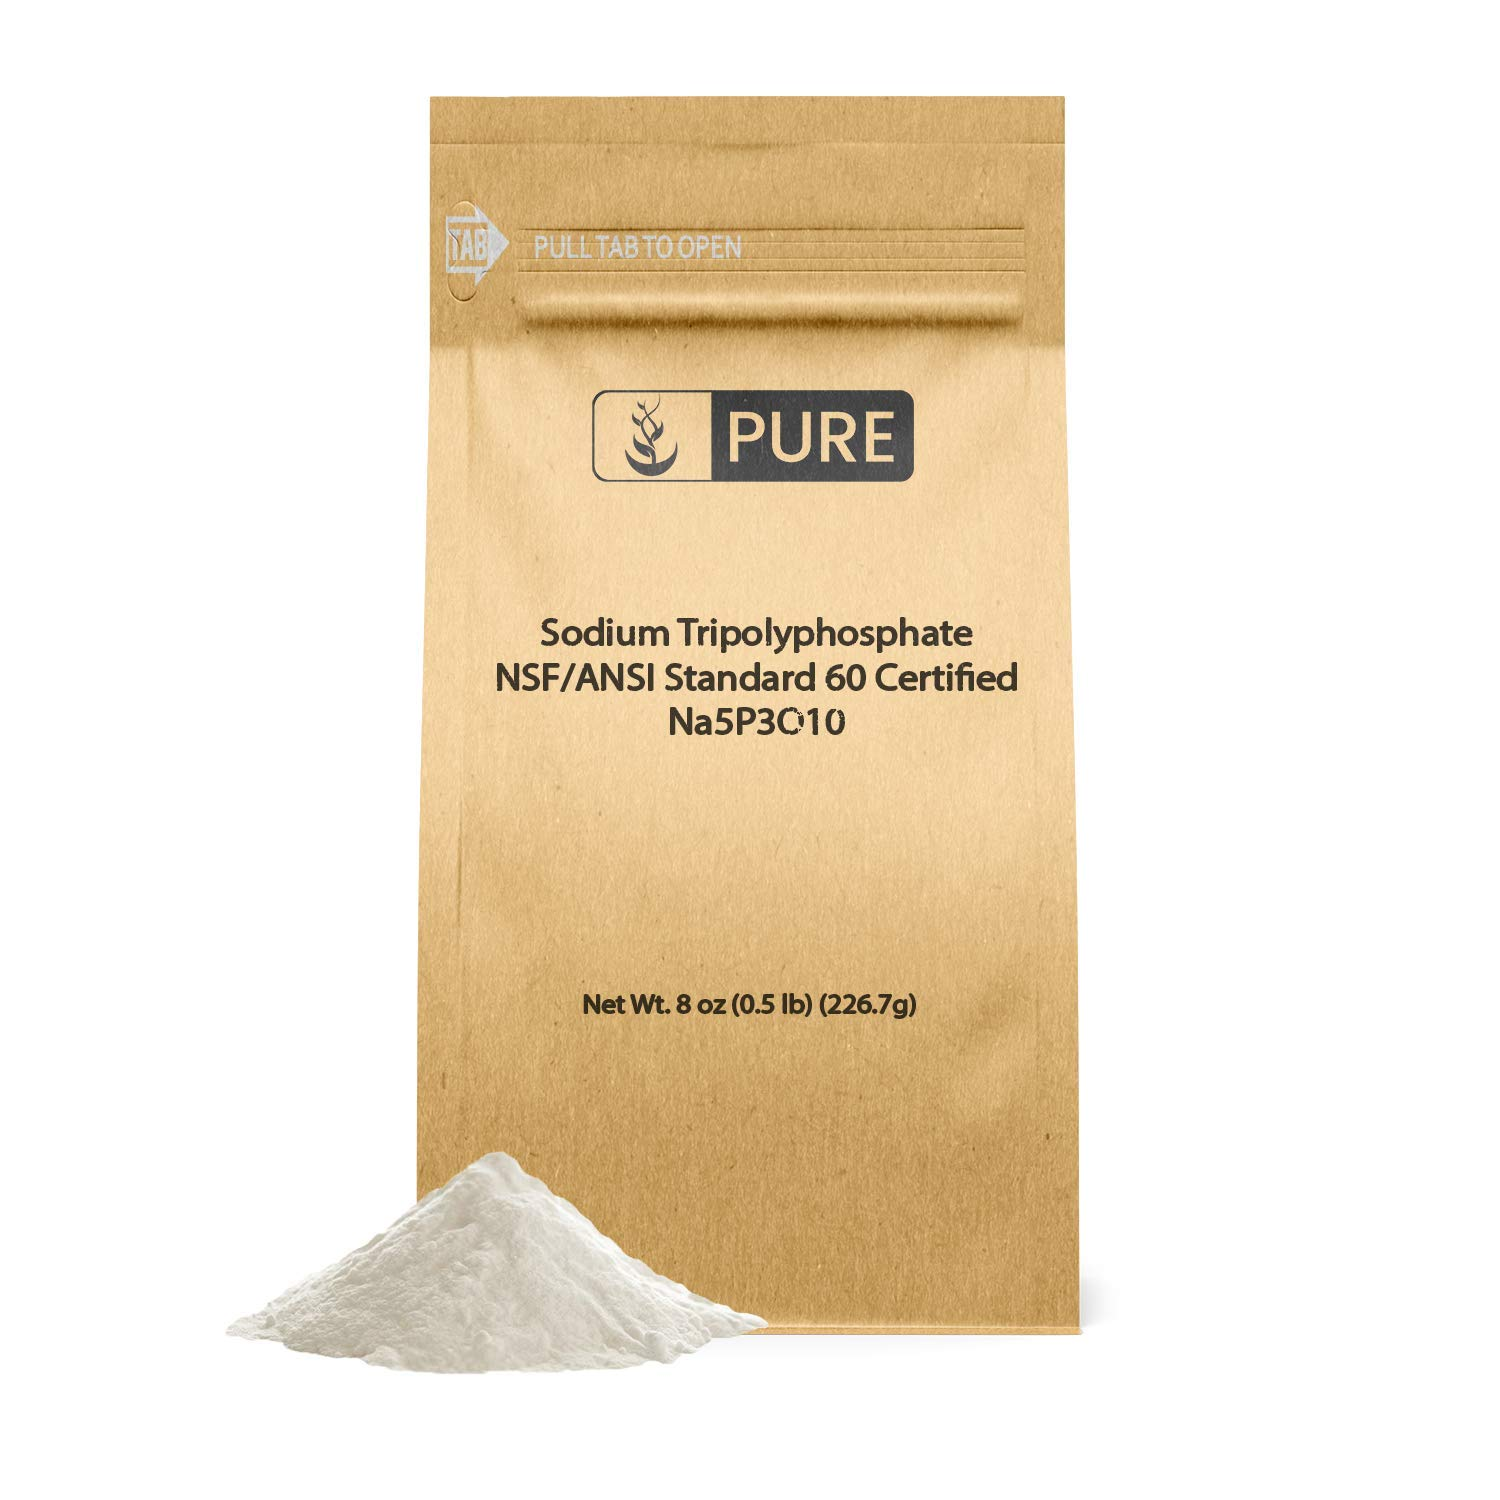 Sodium Tripolyphosphate (8 oz.) by Pure Organic Ingredients, Eco-Friendly Packaging, Helps Soften Water (Also available in 1 lb, 2.5 lb, 50 lb)